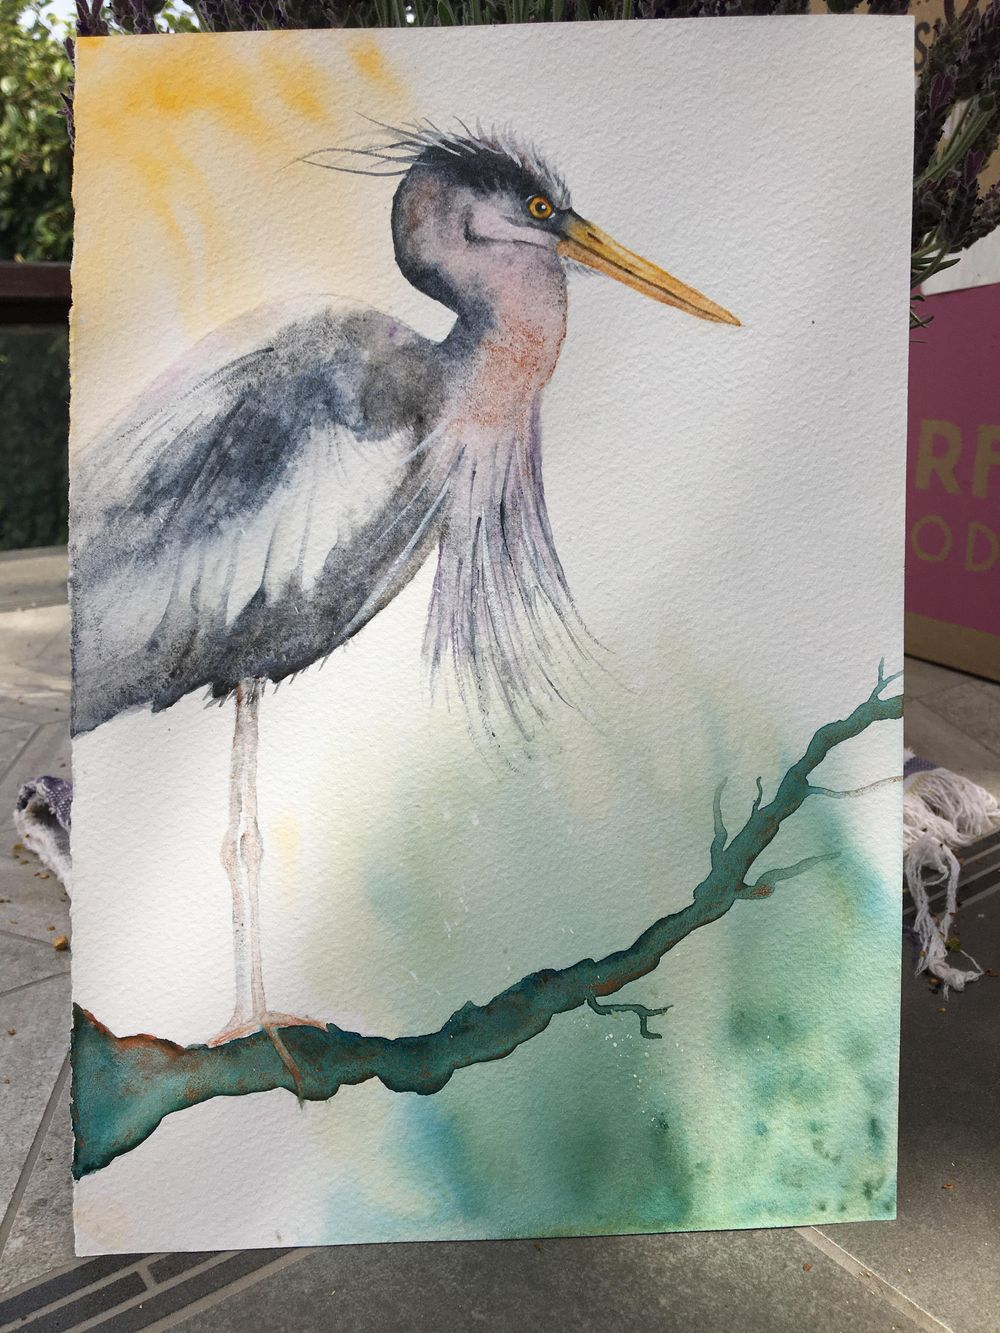 My angry heron - image 1 - student project